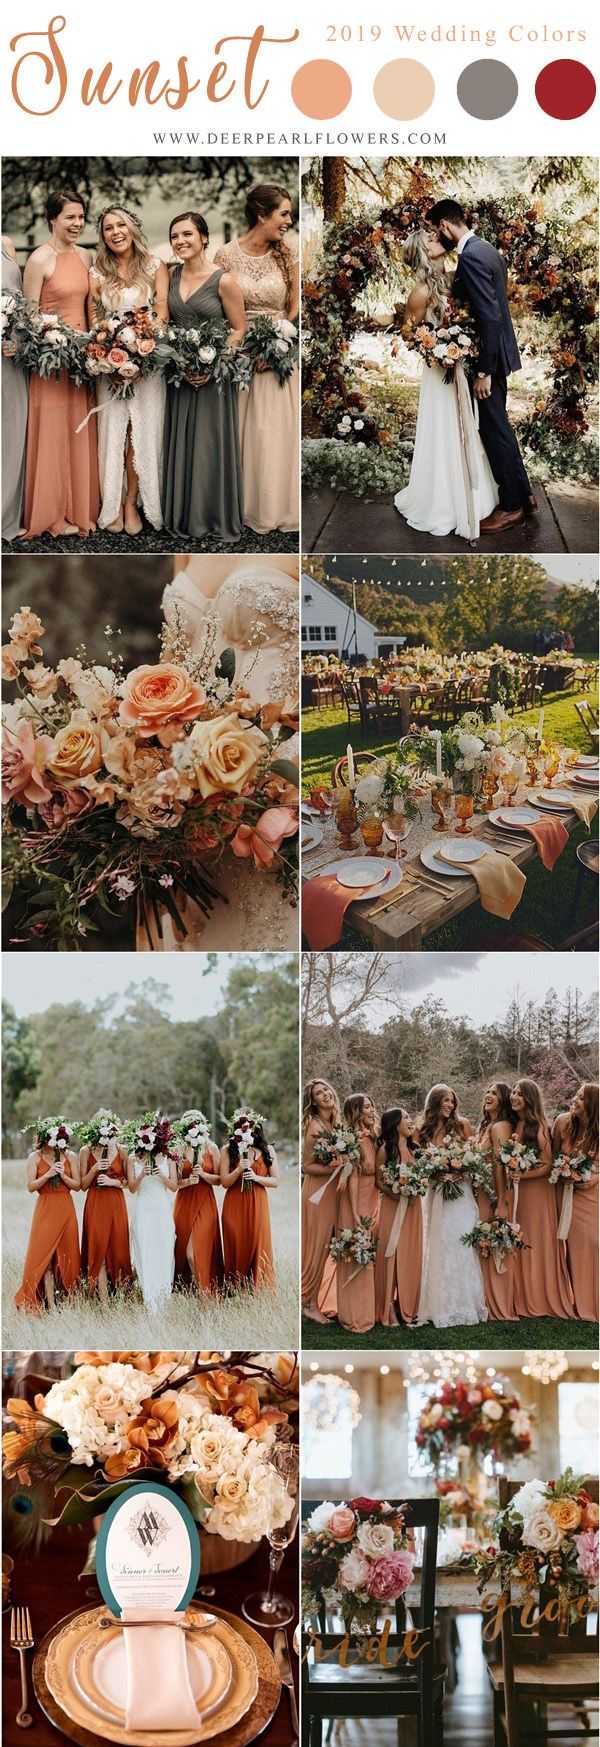 Top 10 Wedding Color Scheme Ideas for 2019 Trends